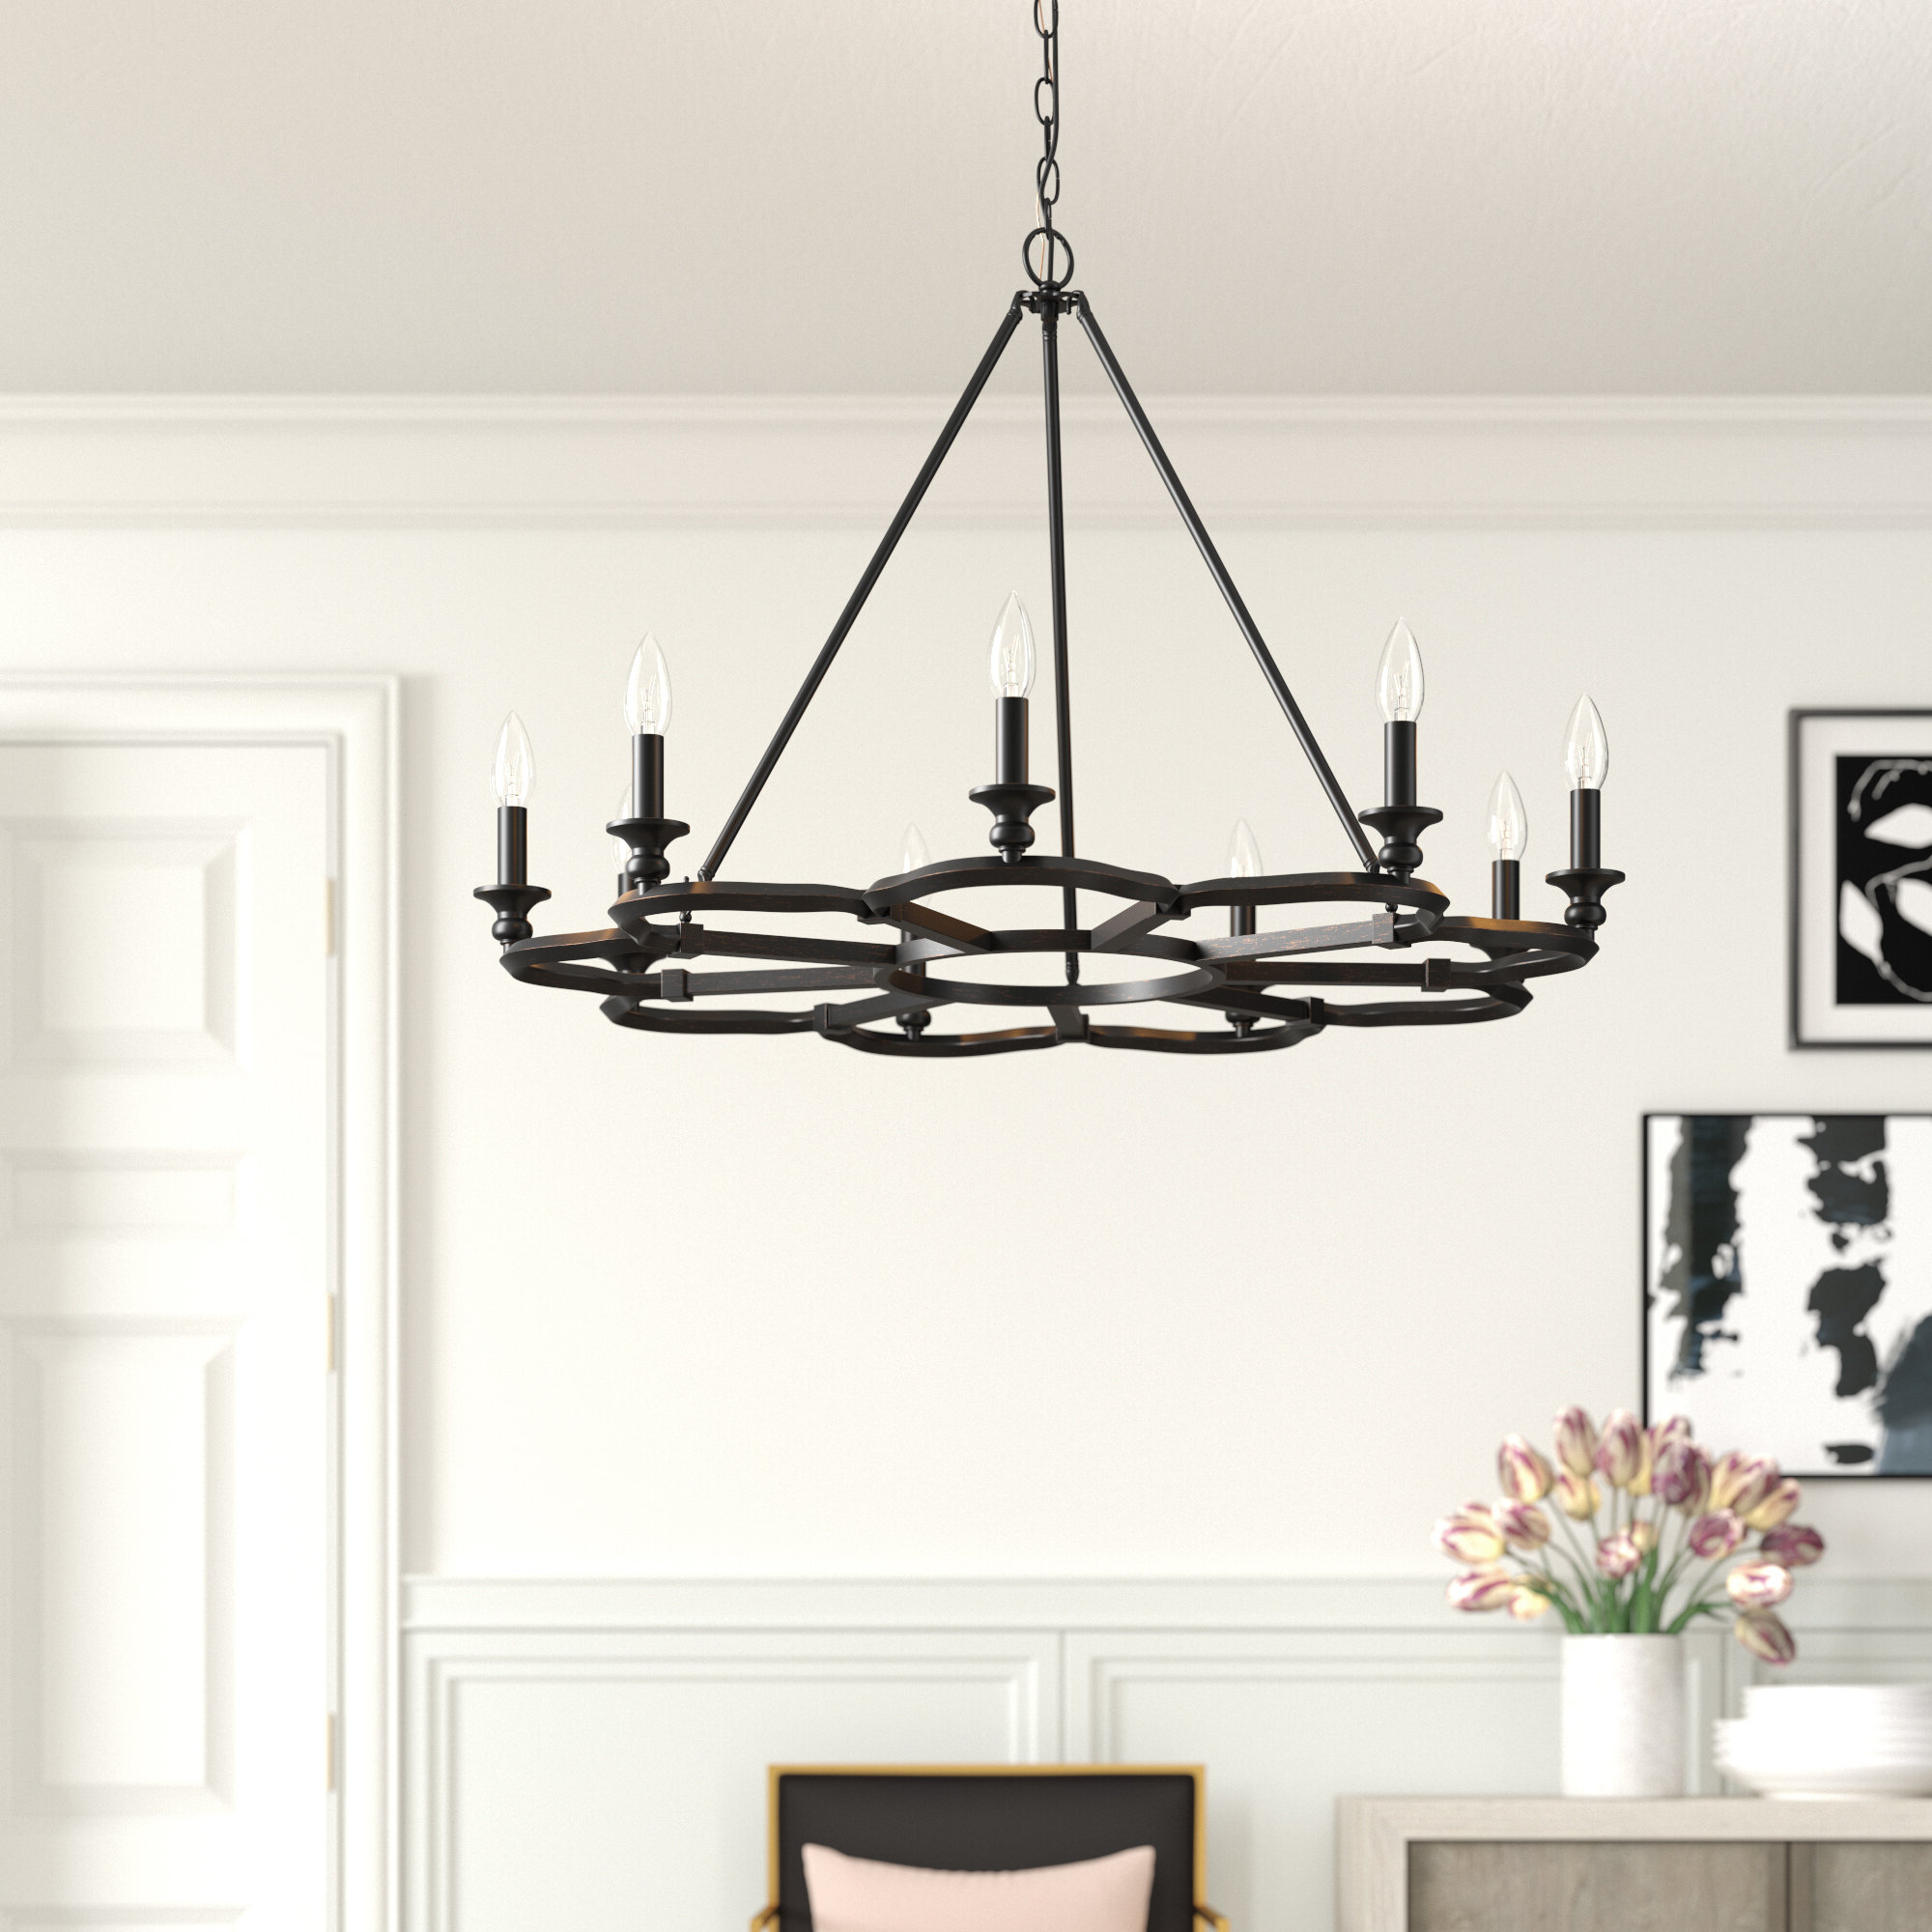 Jae 9 Light Wagon Wheel Chandelier Pertaining To 2019 Giverny 9 Light Candle Style Chandeliers (Gallery 11 of 20)